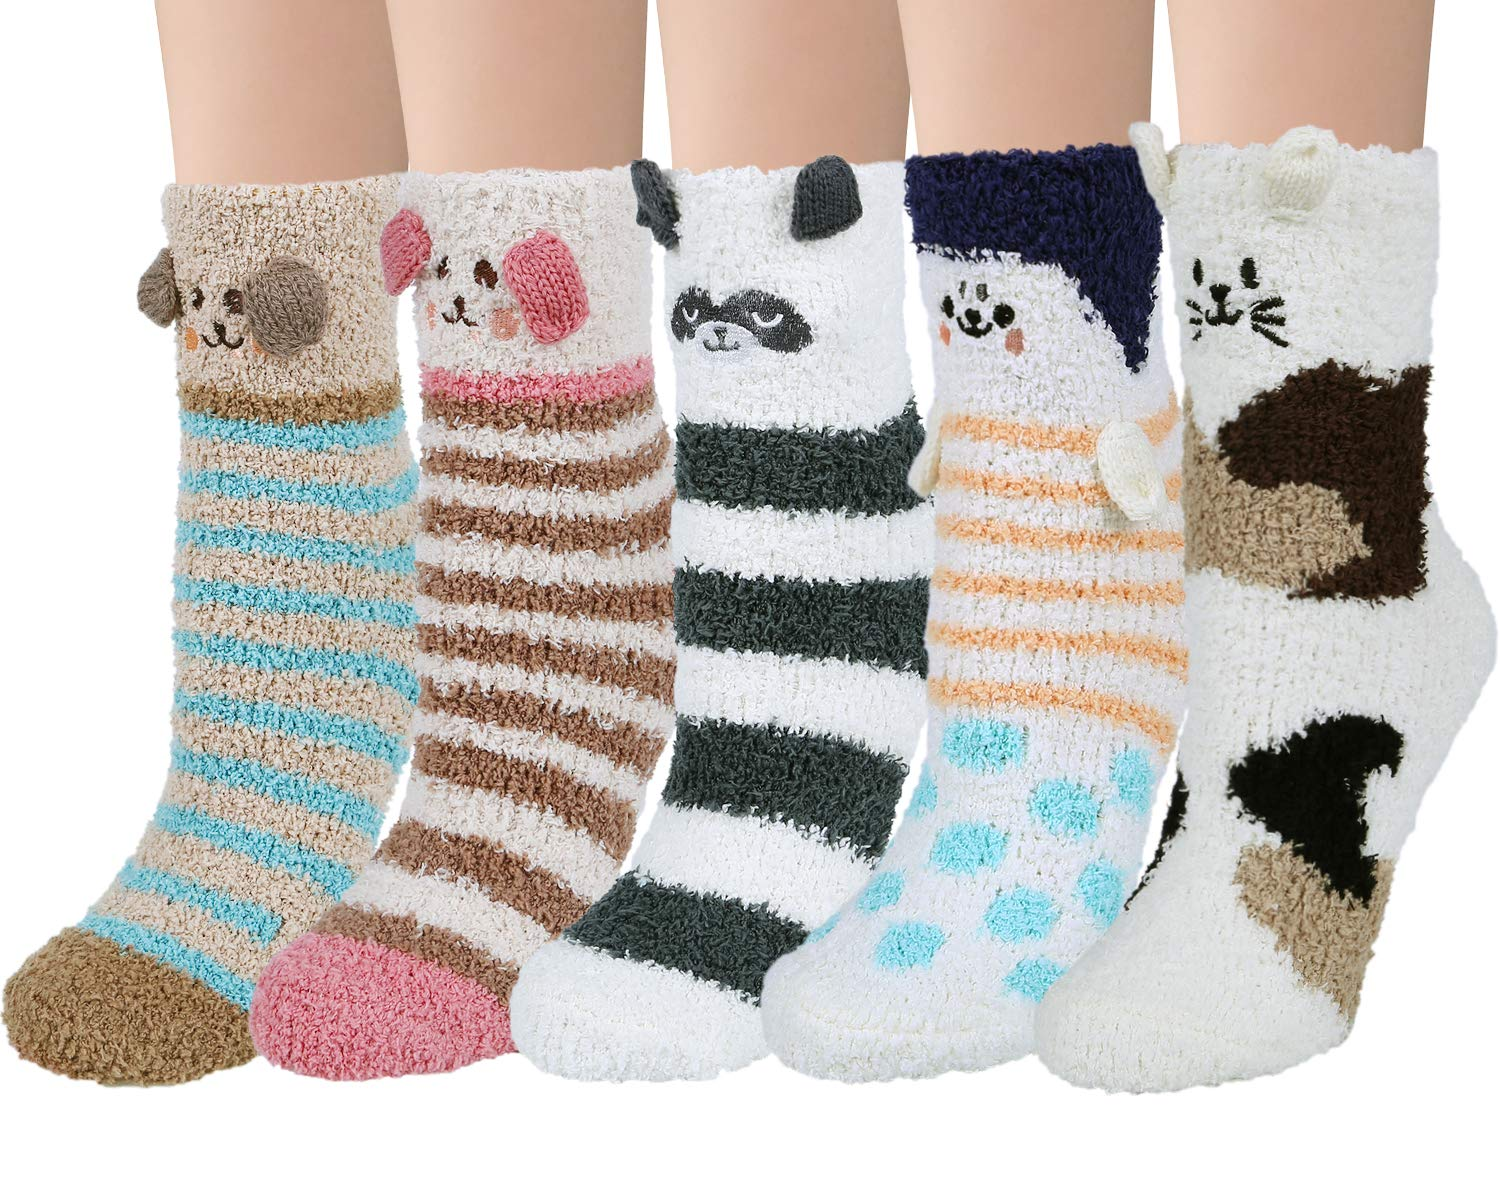 5 Pairs Womens Fuzzy Socks Winter Warm Cozy Soft Fluffy Cute Animal Slipper Socks, Mix Color 11(5 pairs) by Loritta